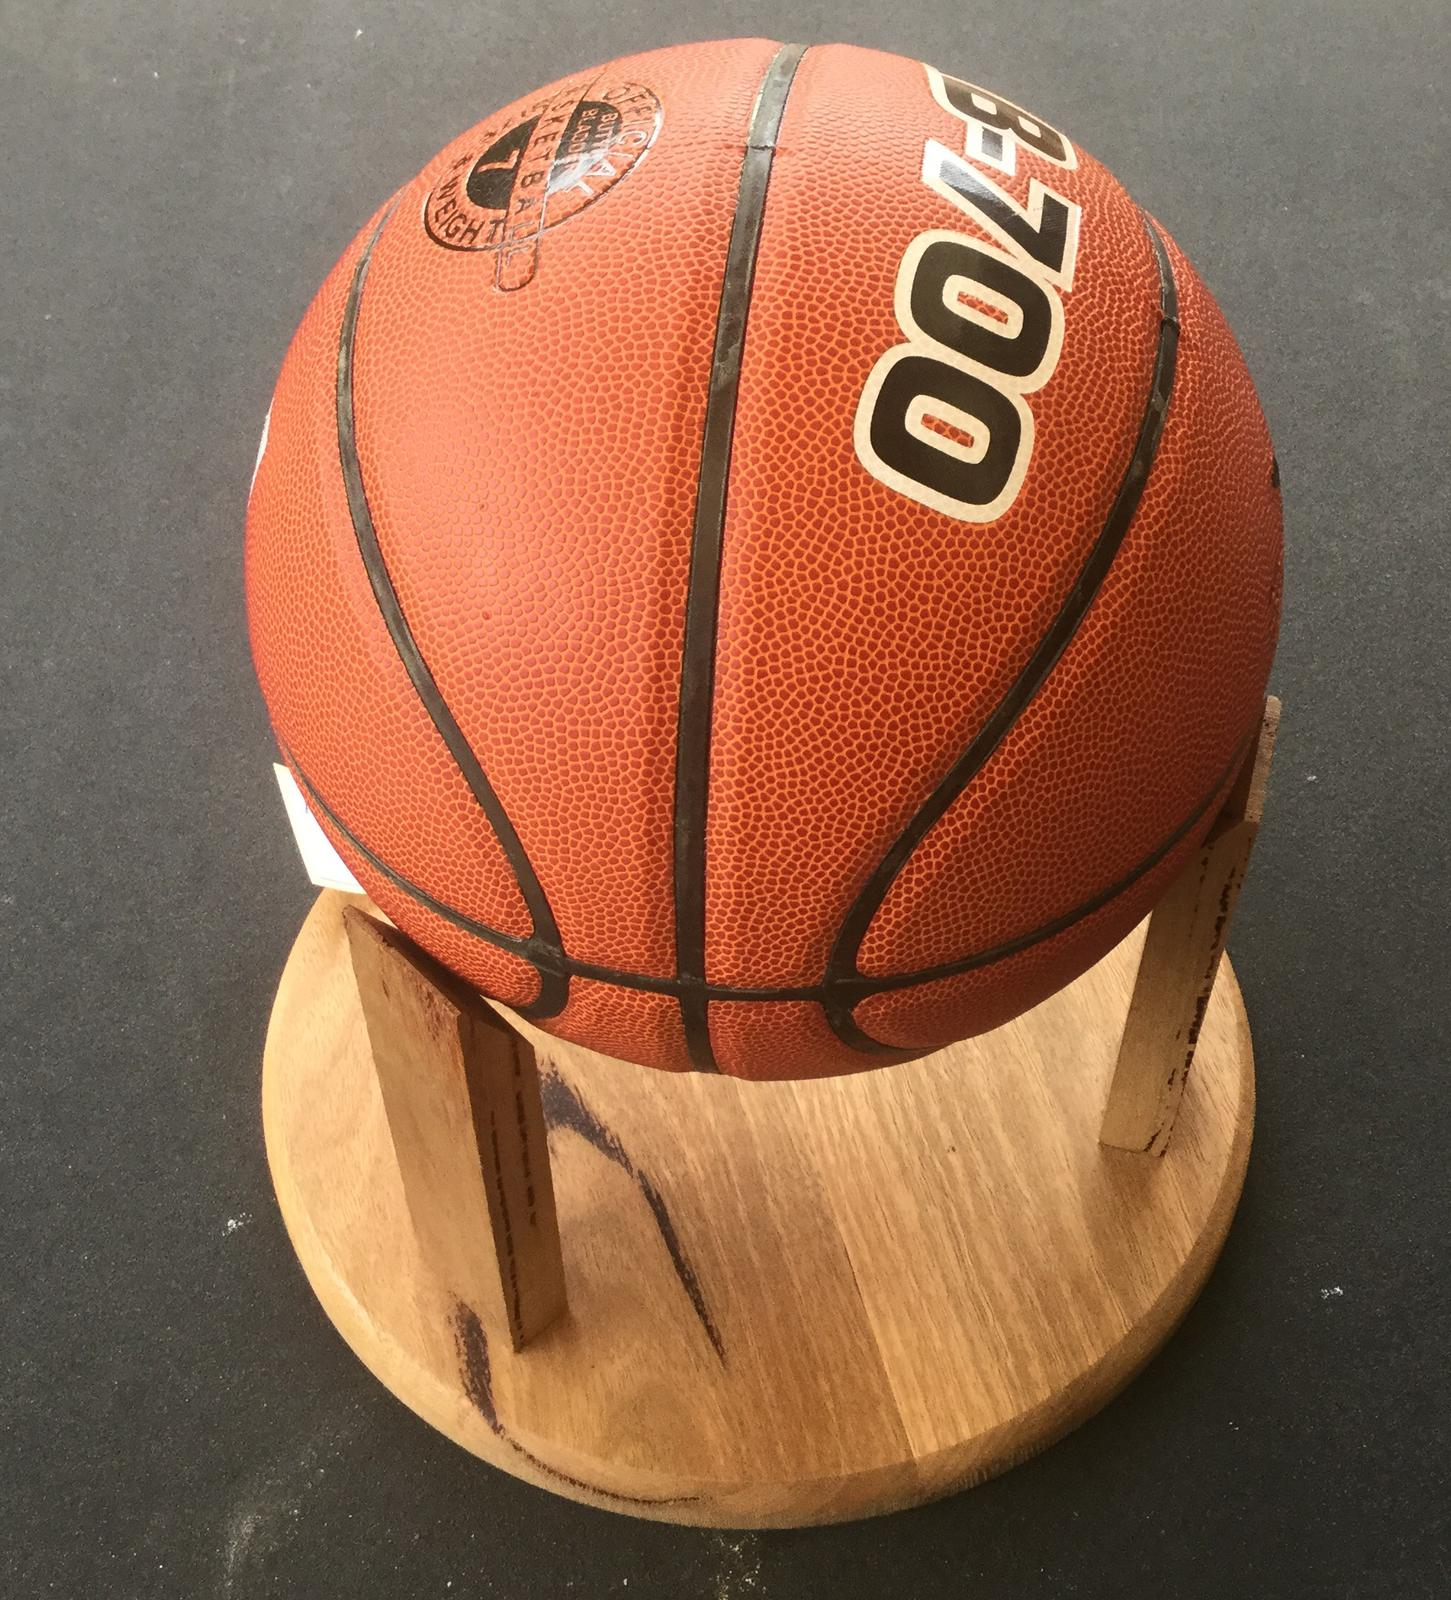 Display stands for basketballs